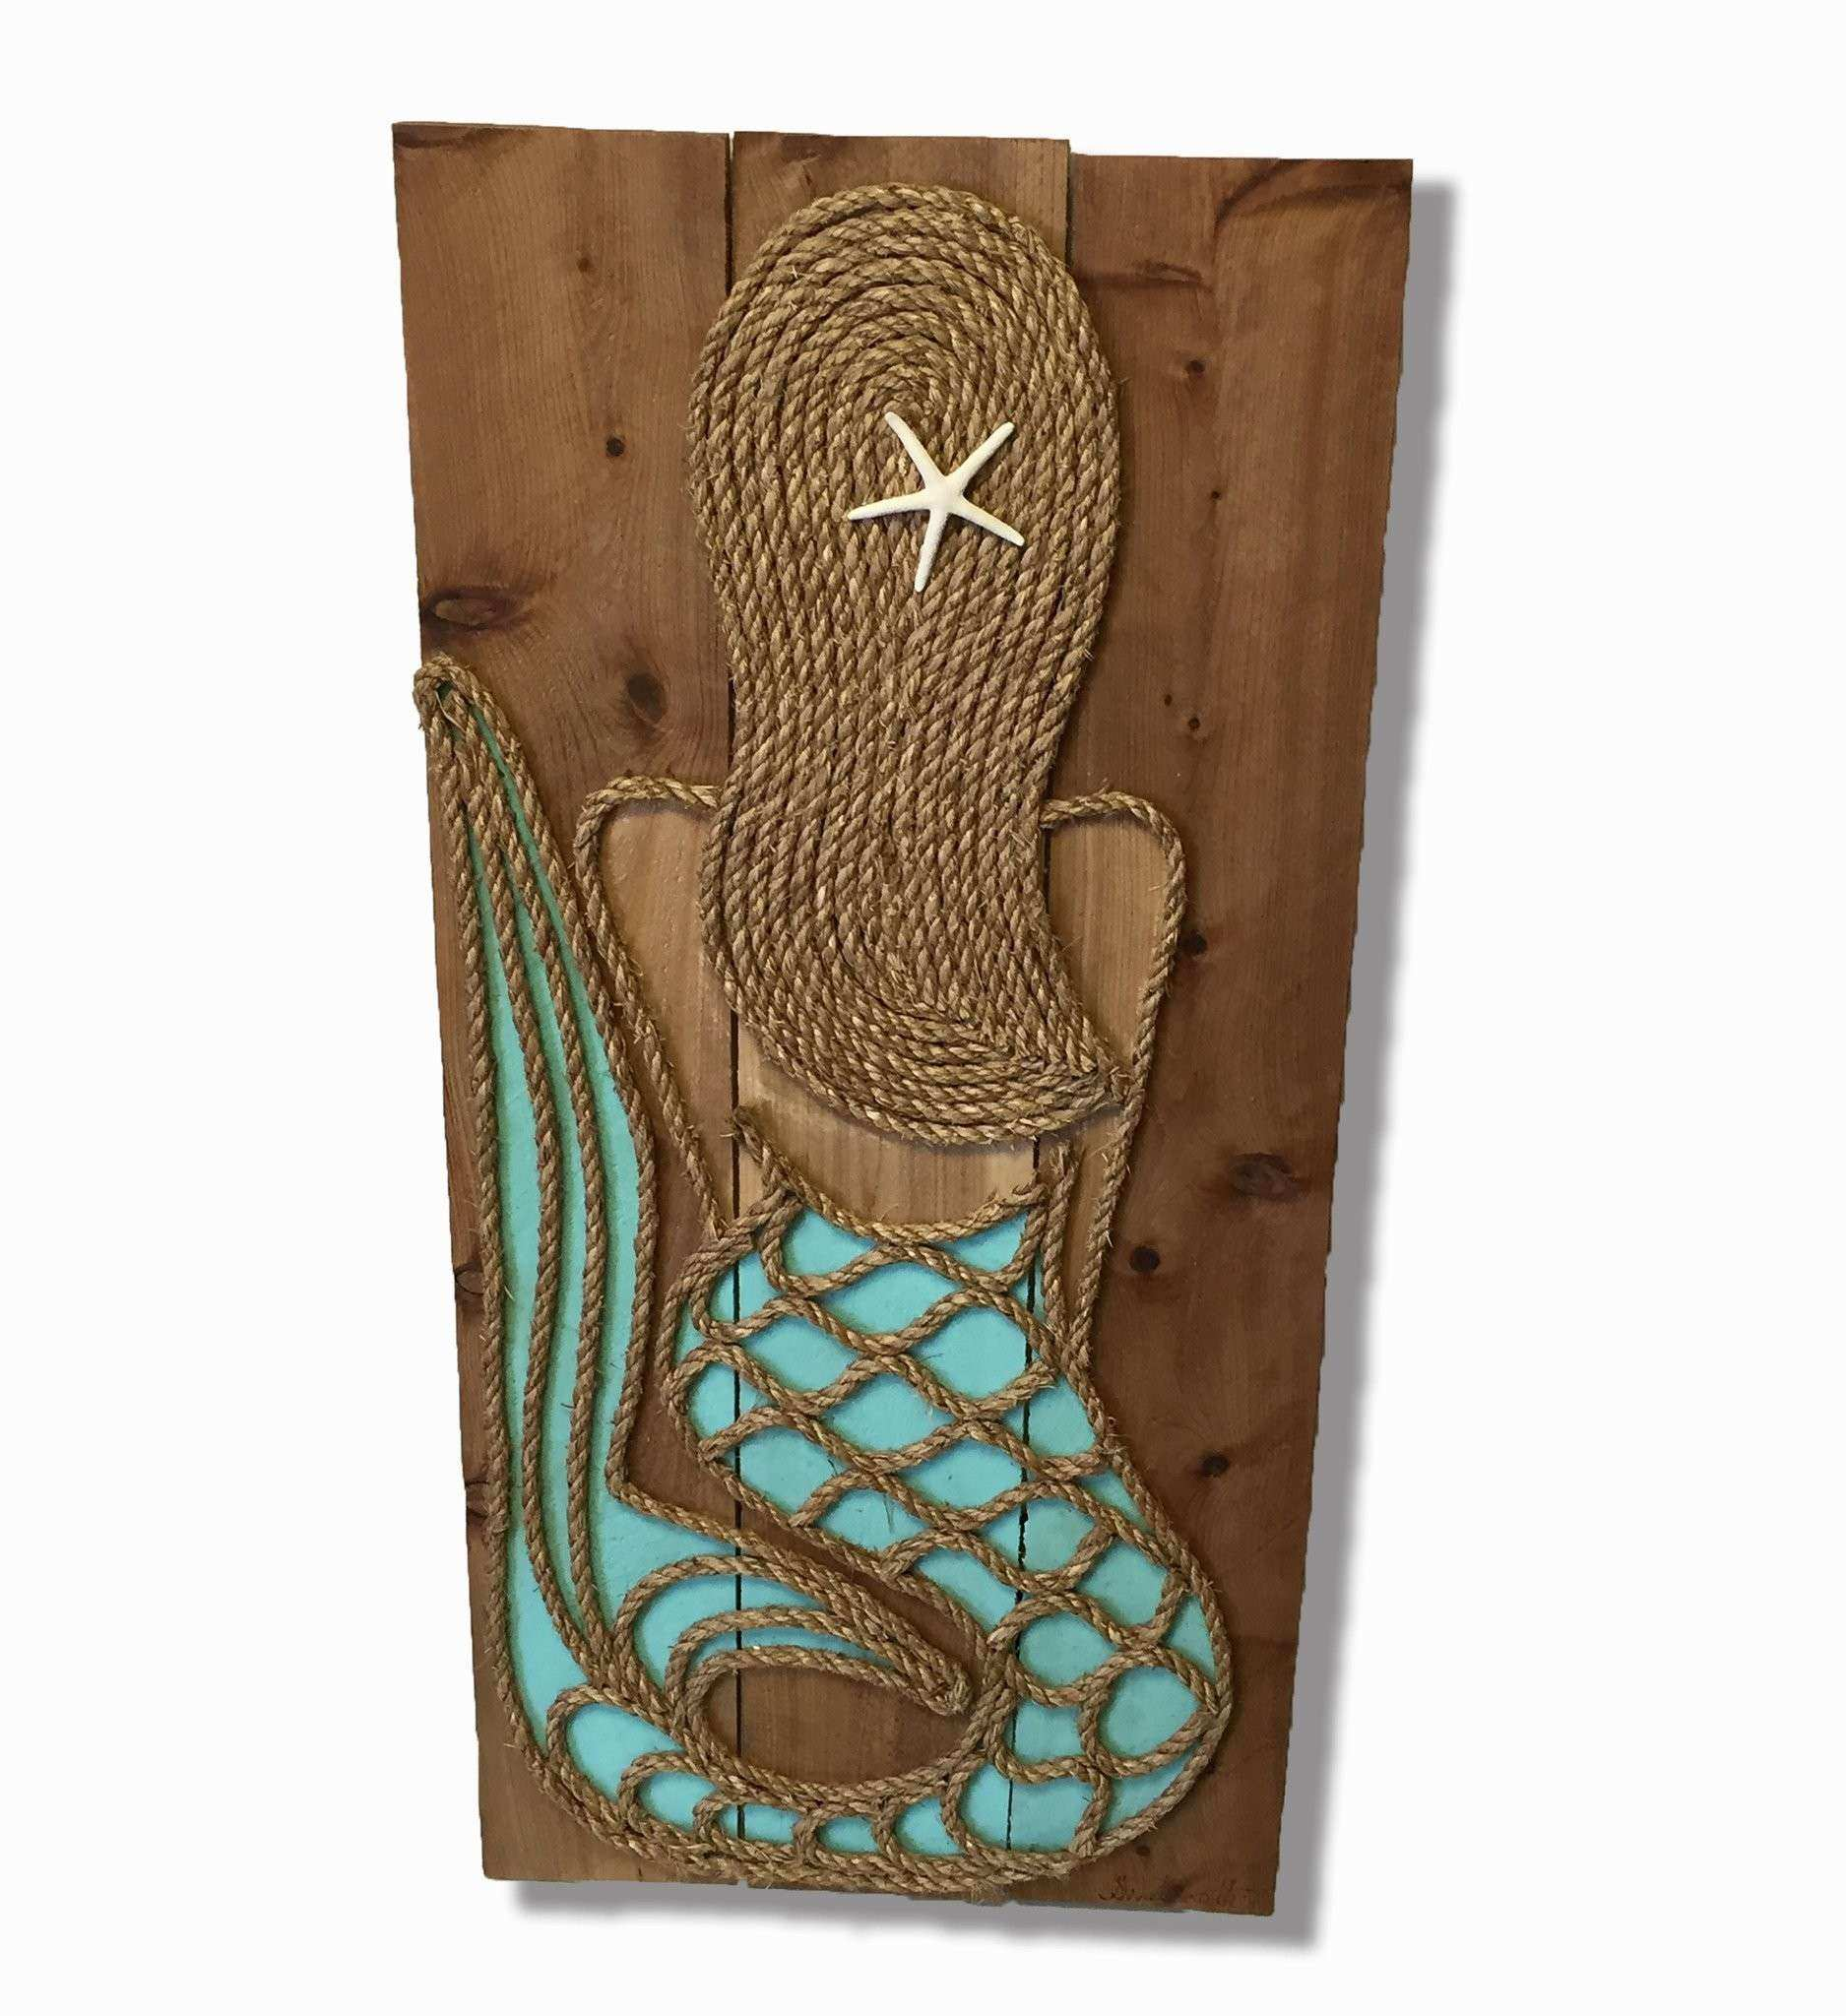 Free Download Image New Wooden Mermaid Wall Decor 650 710 Wooden